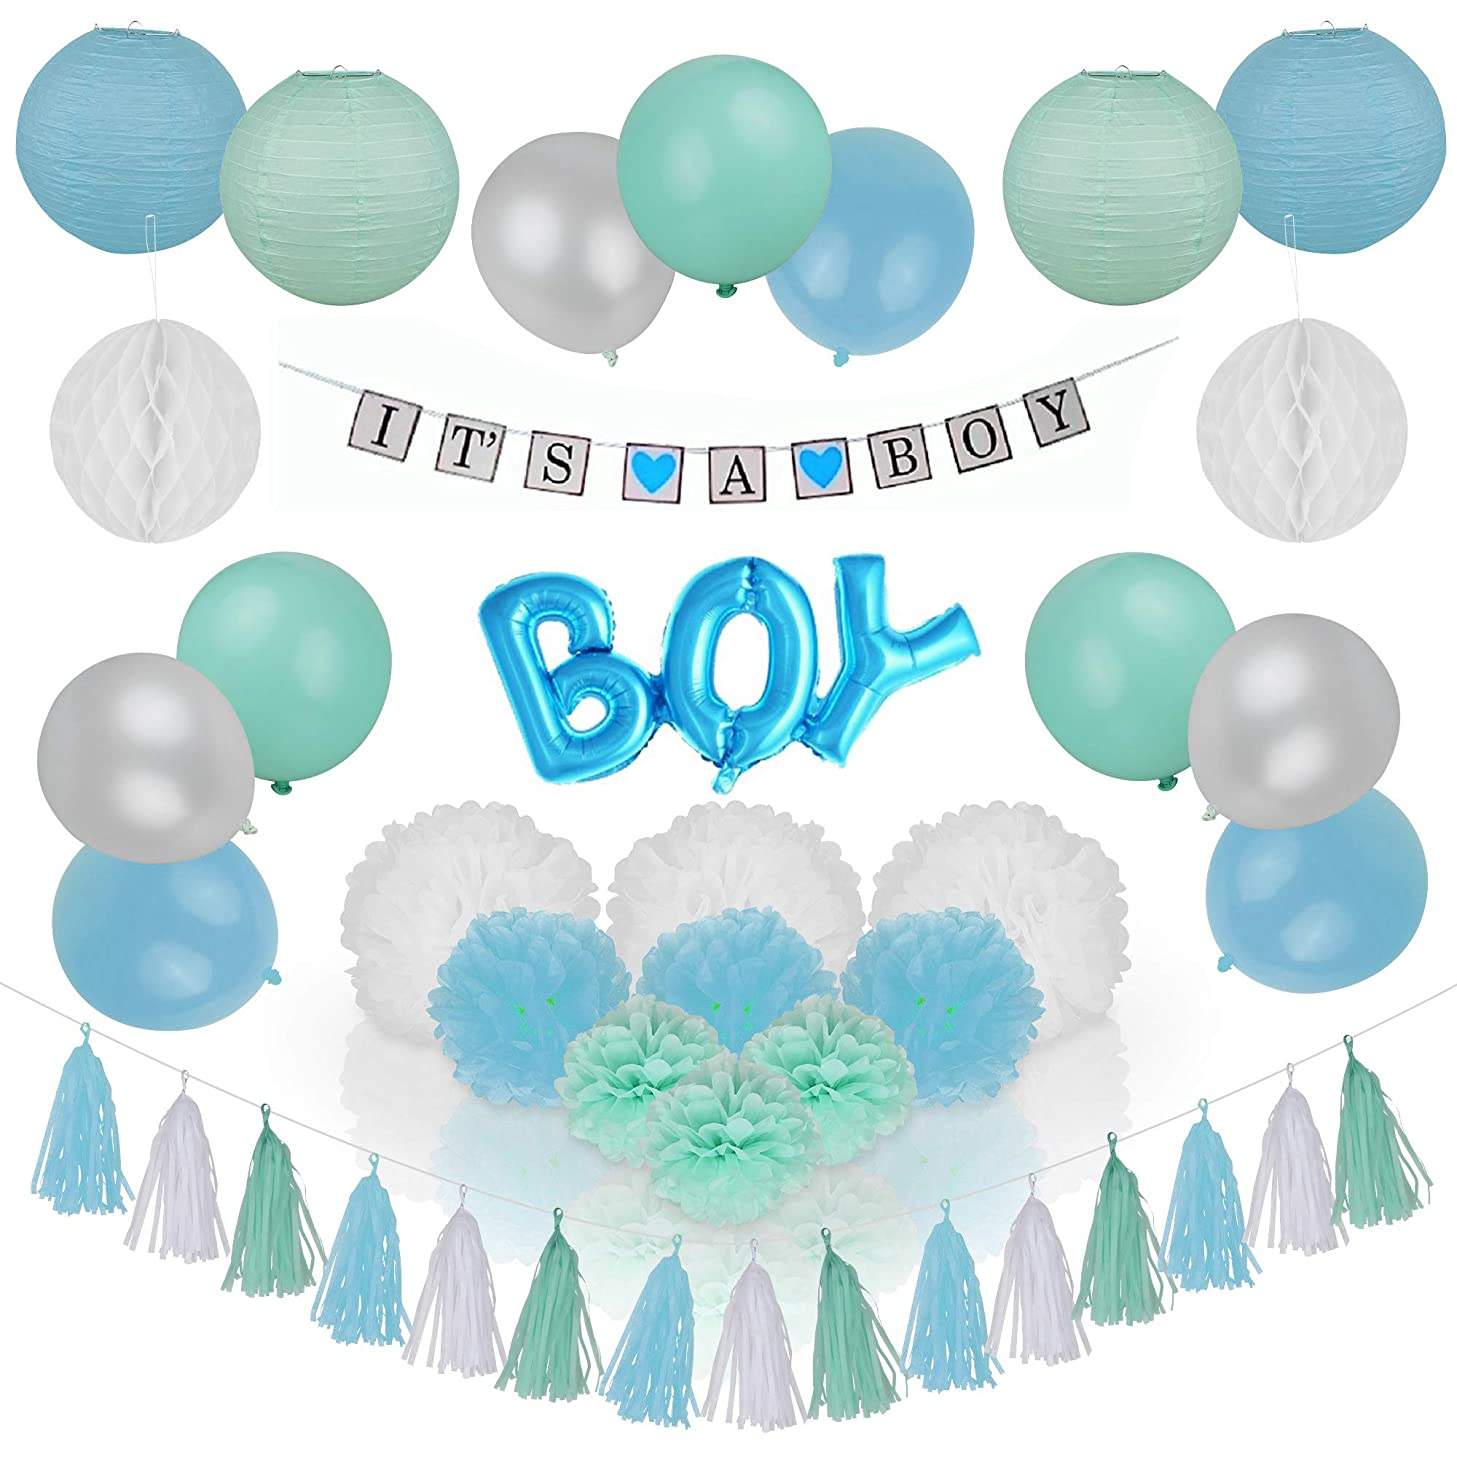 Spotlight Decor - It's A Boy Baby Shower Party Decorations   Gorgeous Tri-Color Set Includes Mint Green, Baby Blue & White Balloons, Banner, Paper Lanterns, Pom Poms & Party Tassels   Easy to Assemble